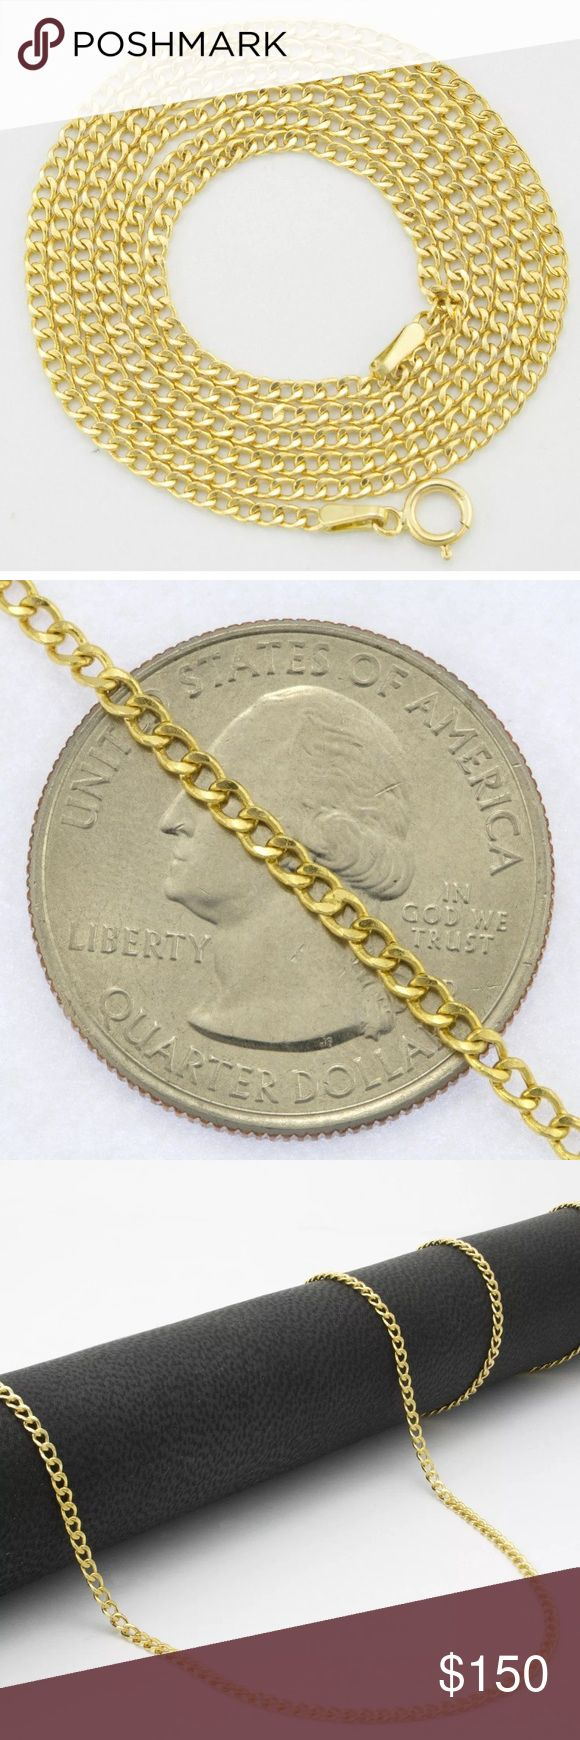 """Solid 10K Gold Cuban Link Chain 20"""" Necklace New Brand New Cuban Chain is 100% GENUINE 10K YELLOW GOLD and has been professionally tested and Stamped 10K for Authenticity.  The chain fastens with a Solid 10K Yellow Gold Spring Ring Clasp that is very strong and easy to use. The chain can be worn on its own or with a pendant. Cuban Chains are especially known for their classic style, shine, and strength.  This high quality chains will not tarnish or discolor as it is Pure 10K Gold and MADE IN…"""